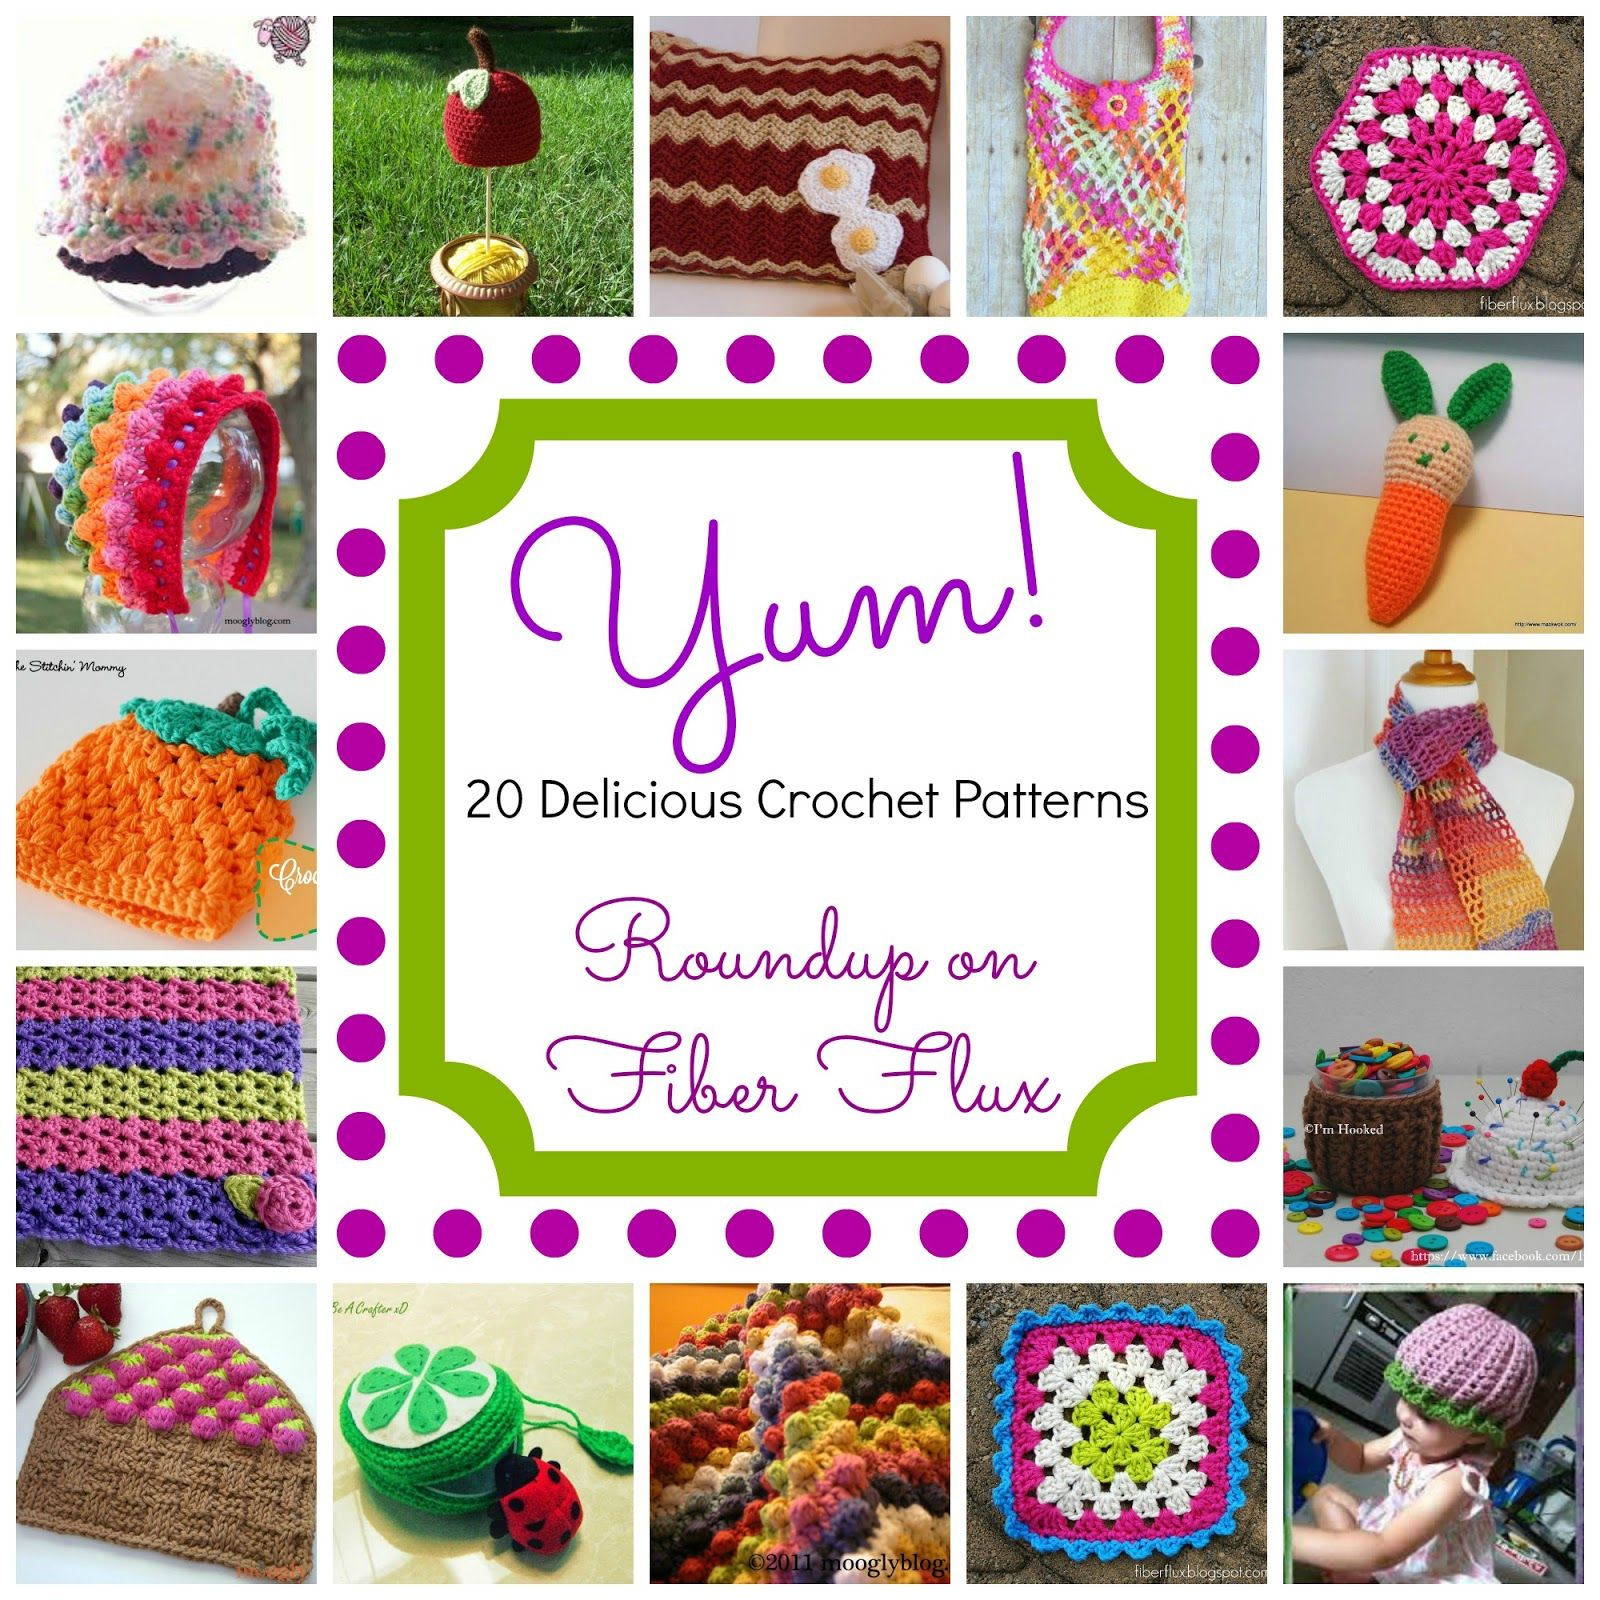 Yum! 20 Delicious Crochet Patterns, roundup on Fiber Flux | Things ...